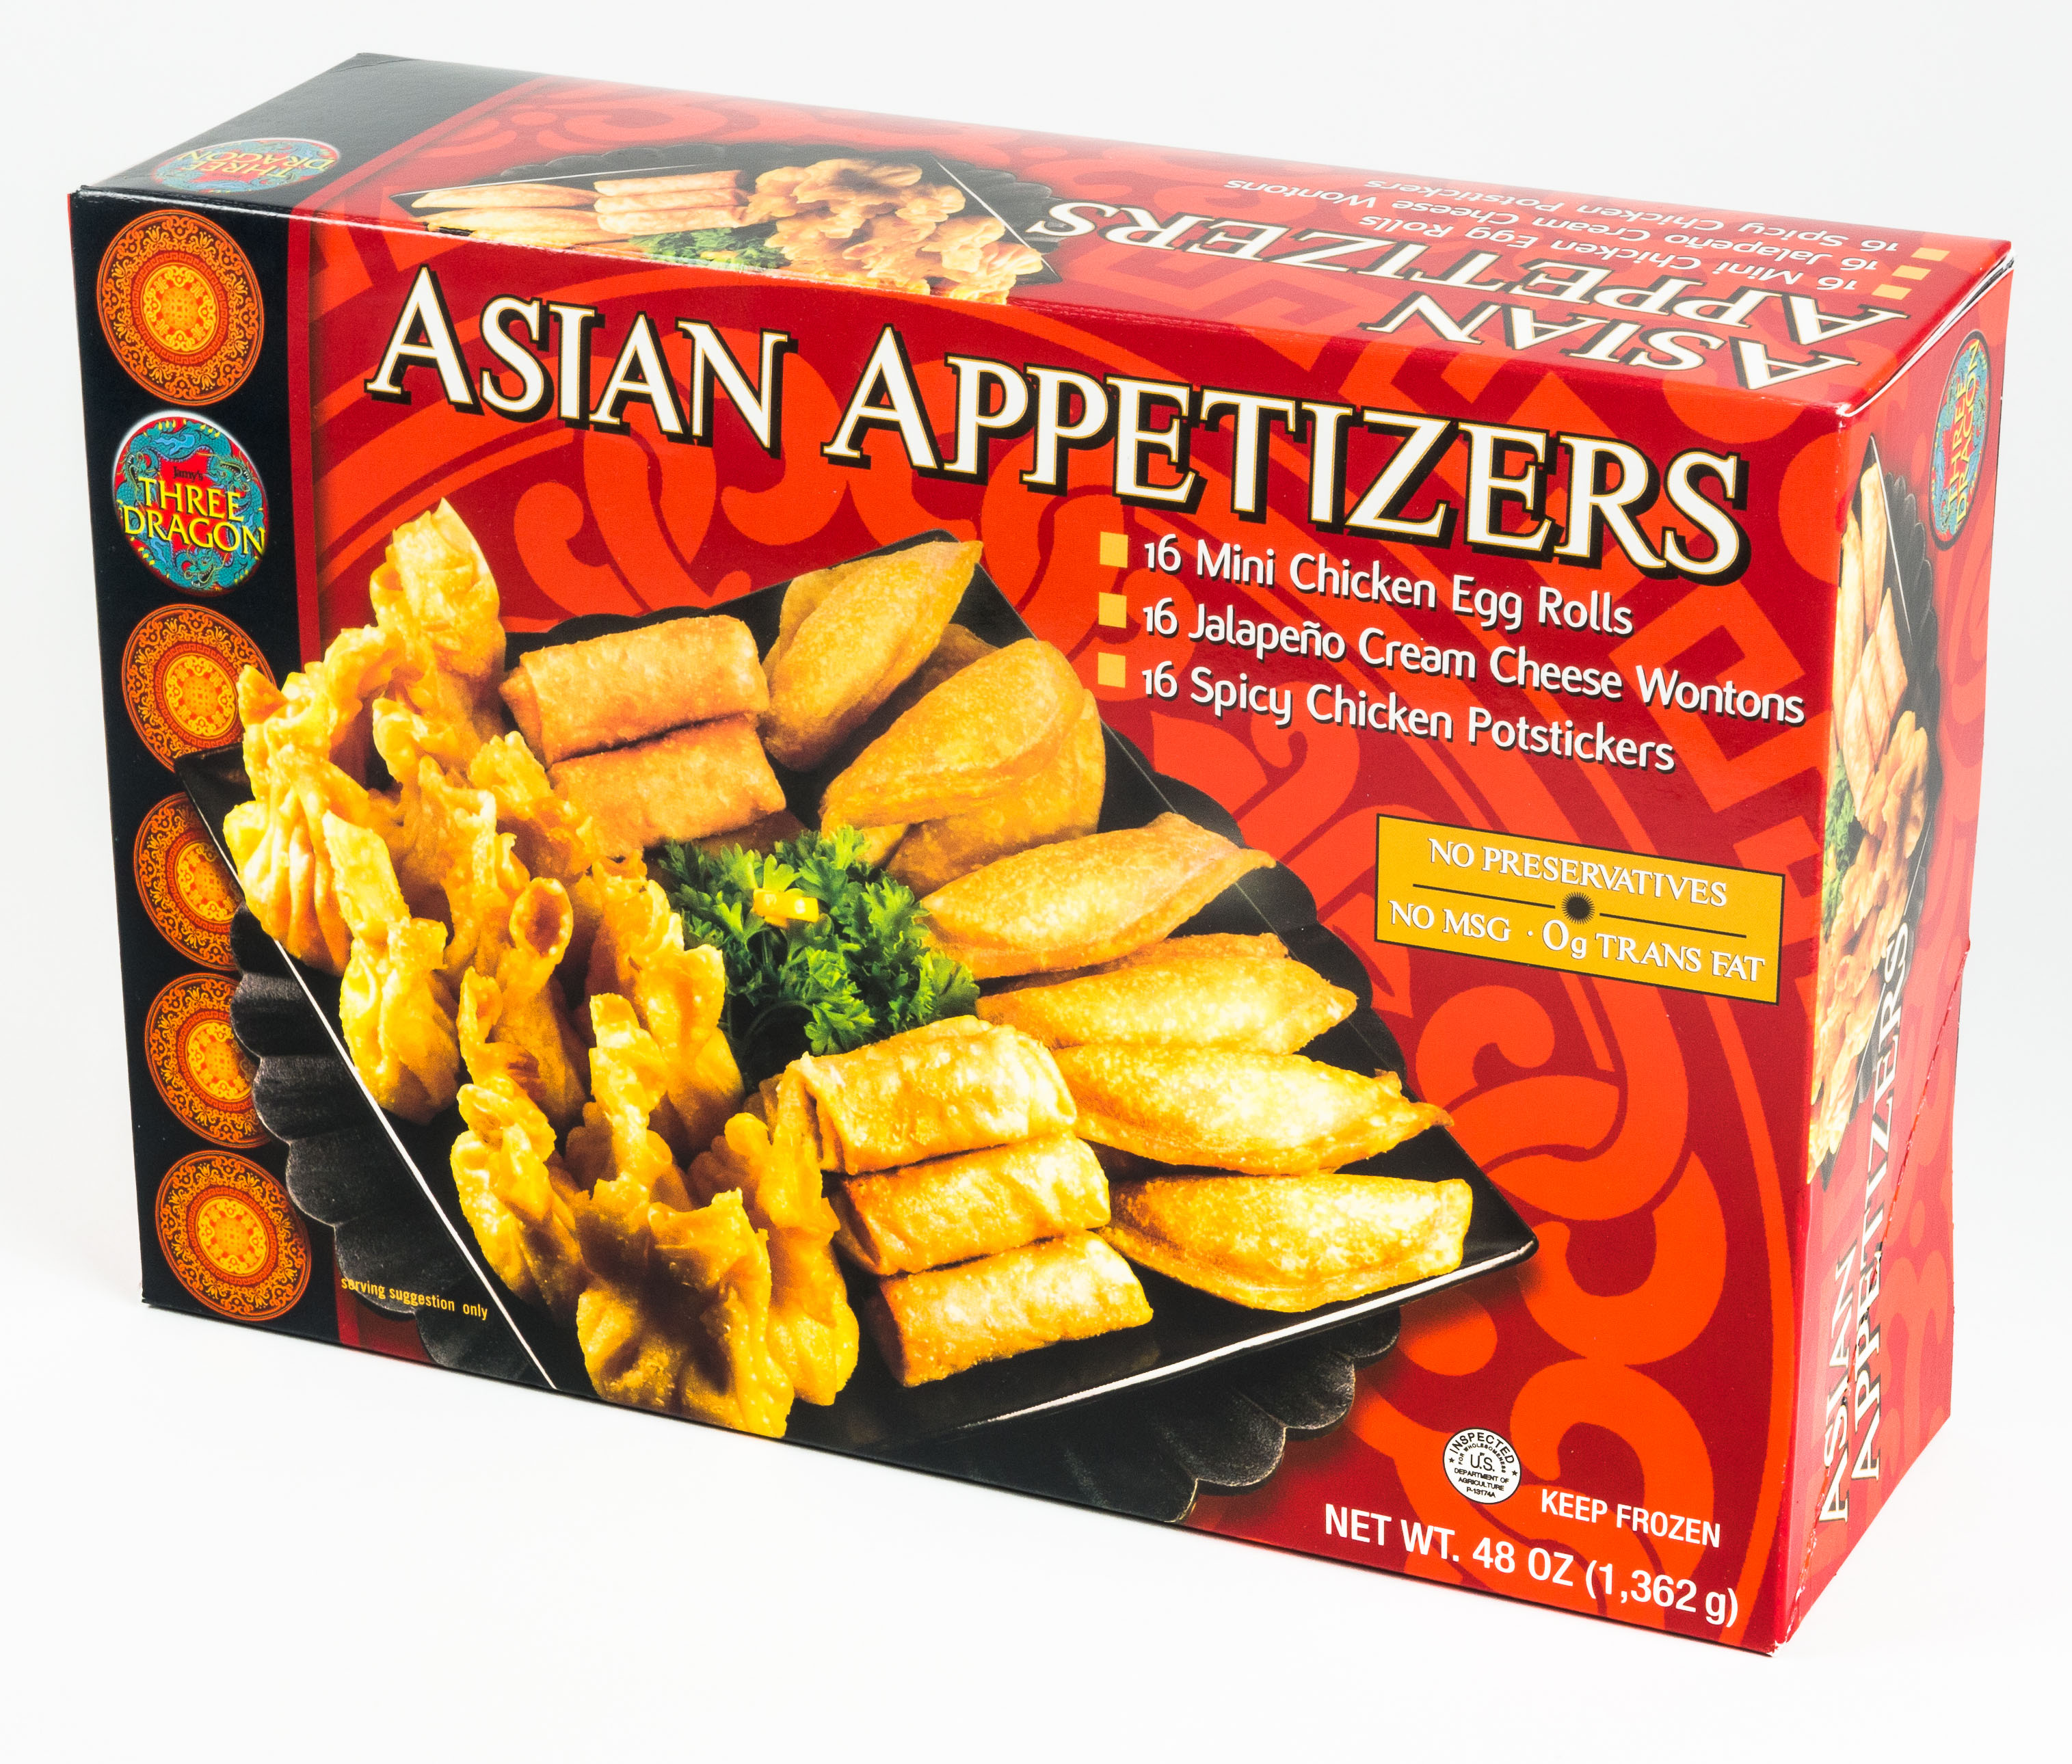 Costco Prepared Appetizers Images